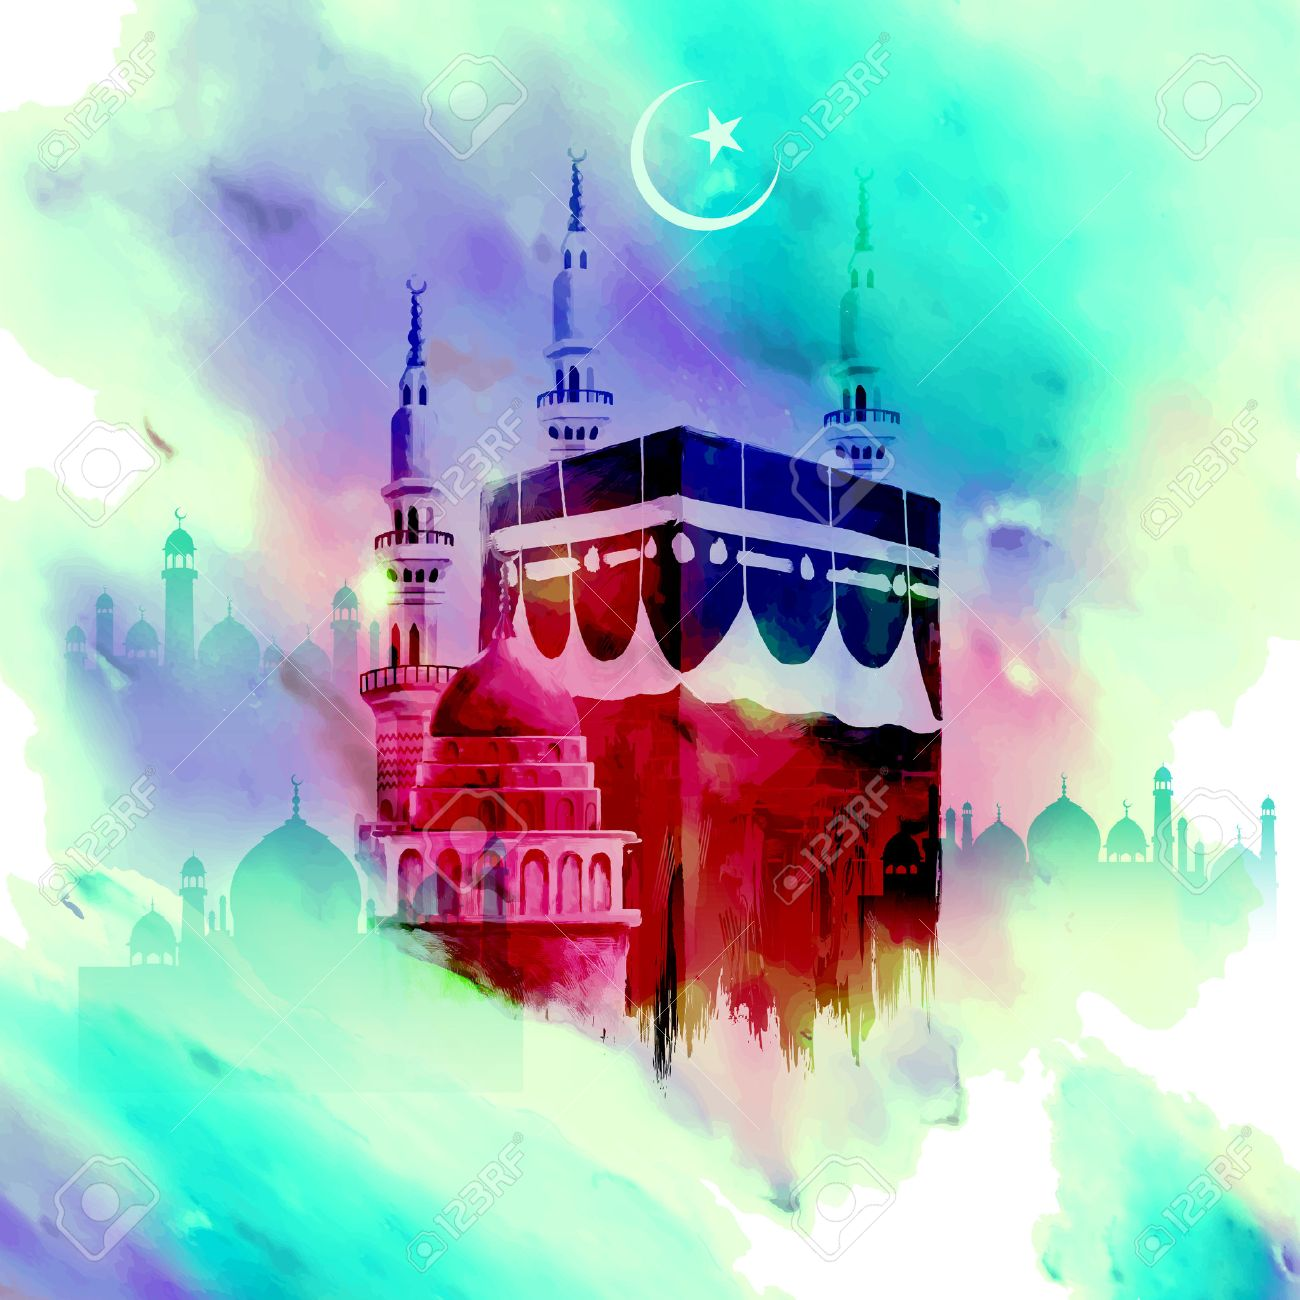 Great Wallpaper Name Nasir - 40919505-illustration-of-eid-mubarak-happy-eid-background-with-kaaba  Perfect Image Reference_488548.jpg